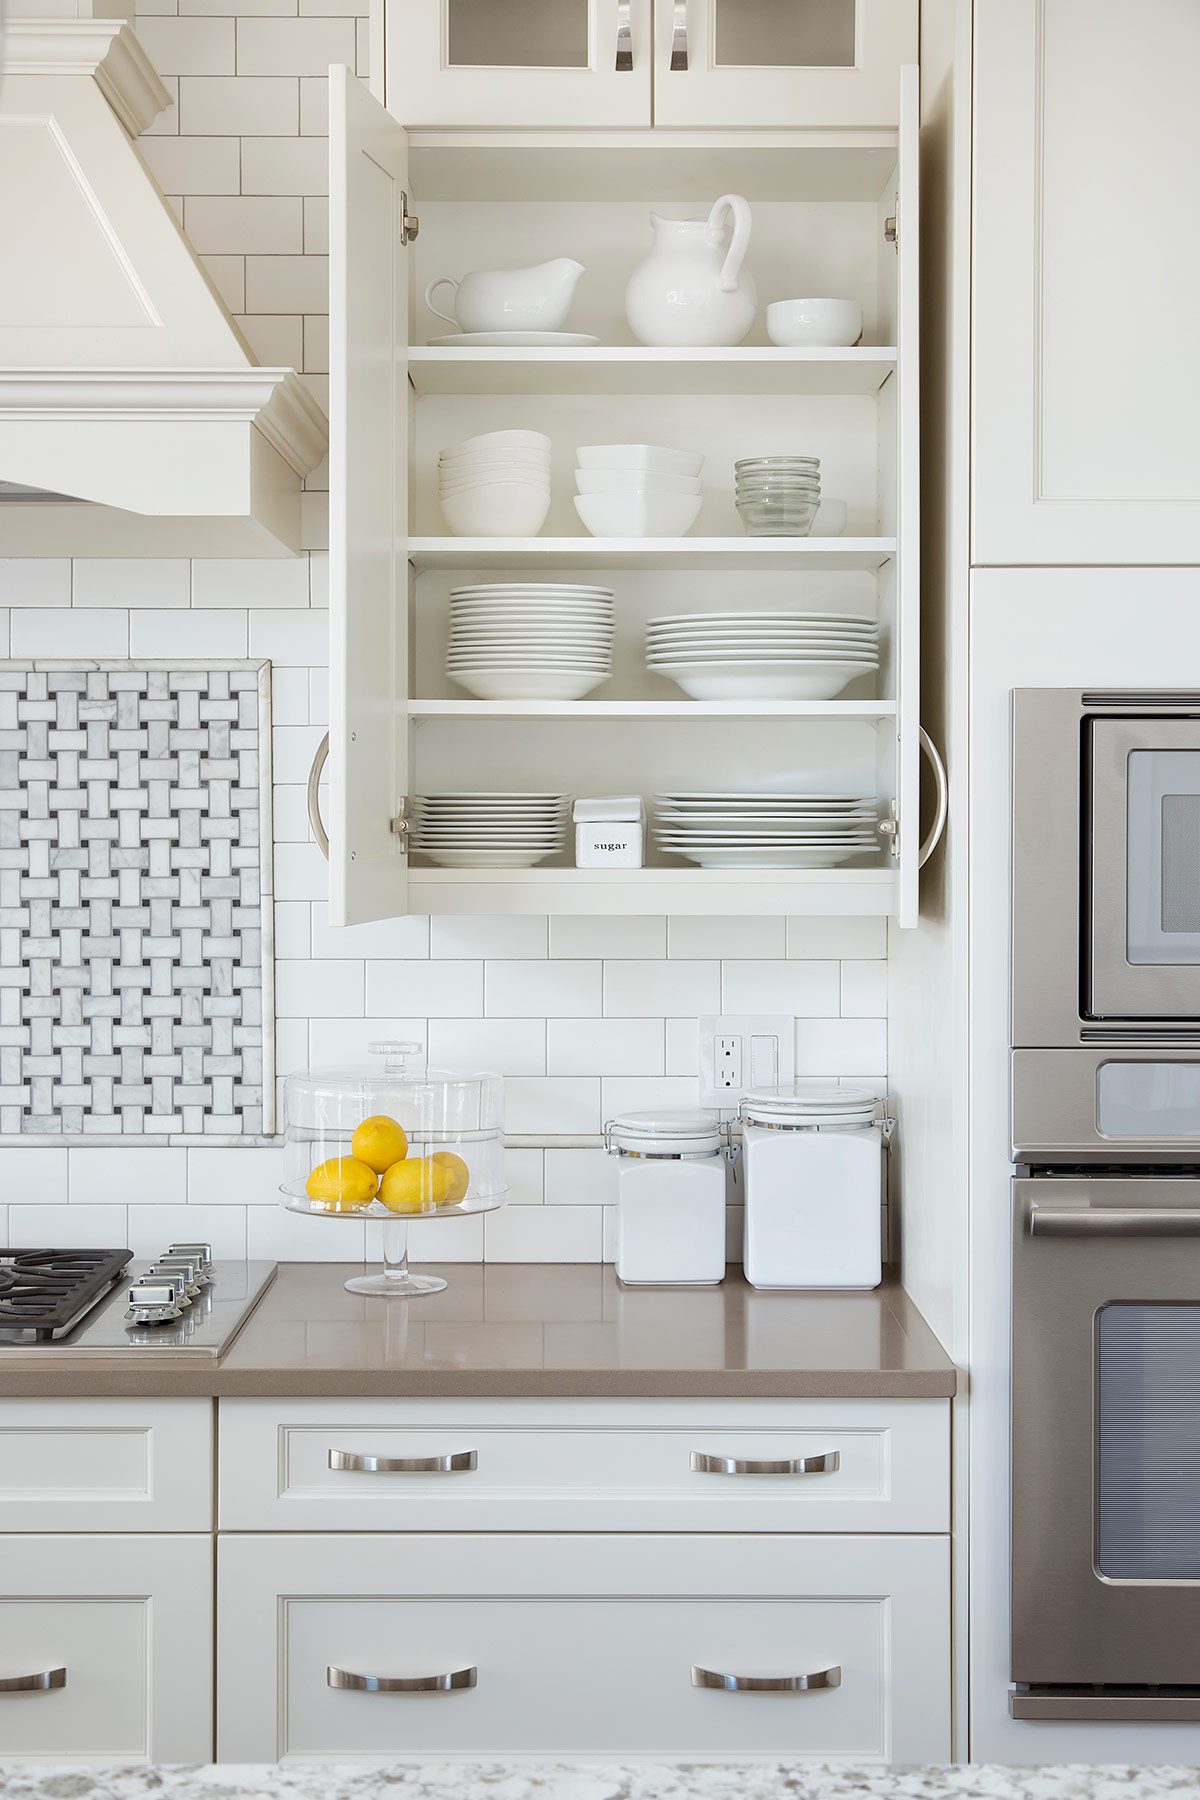 The Top Kitchen Trends Of 2018, According To Houzz